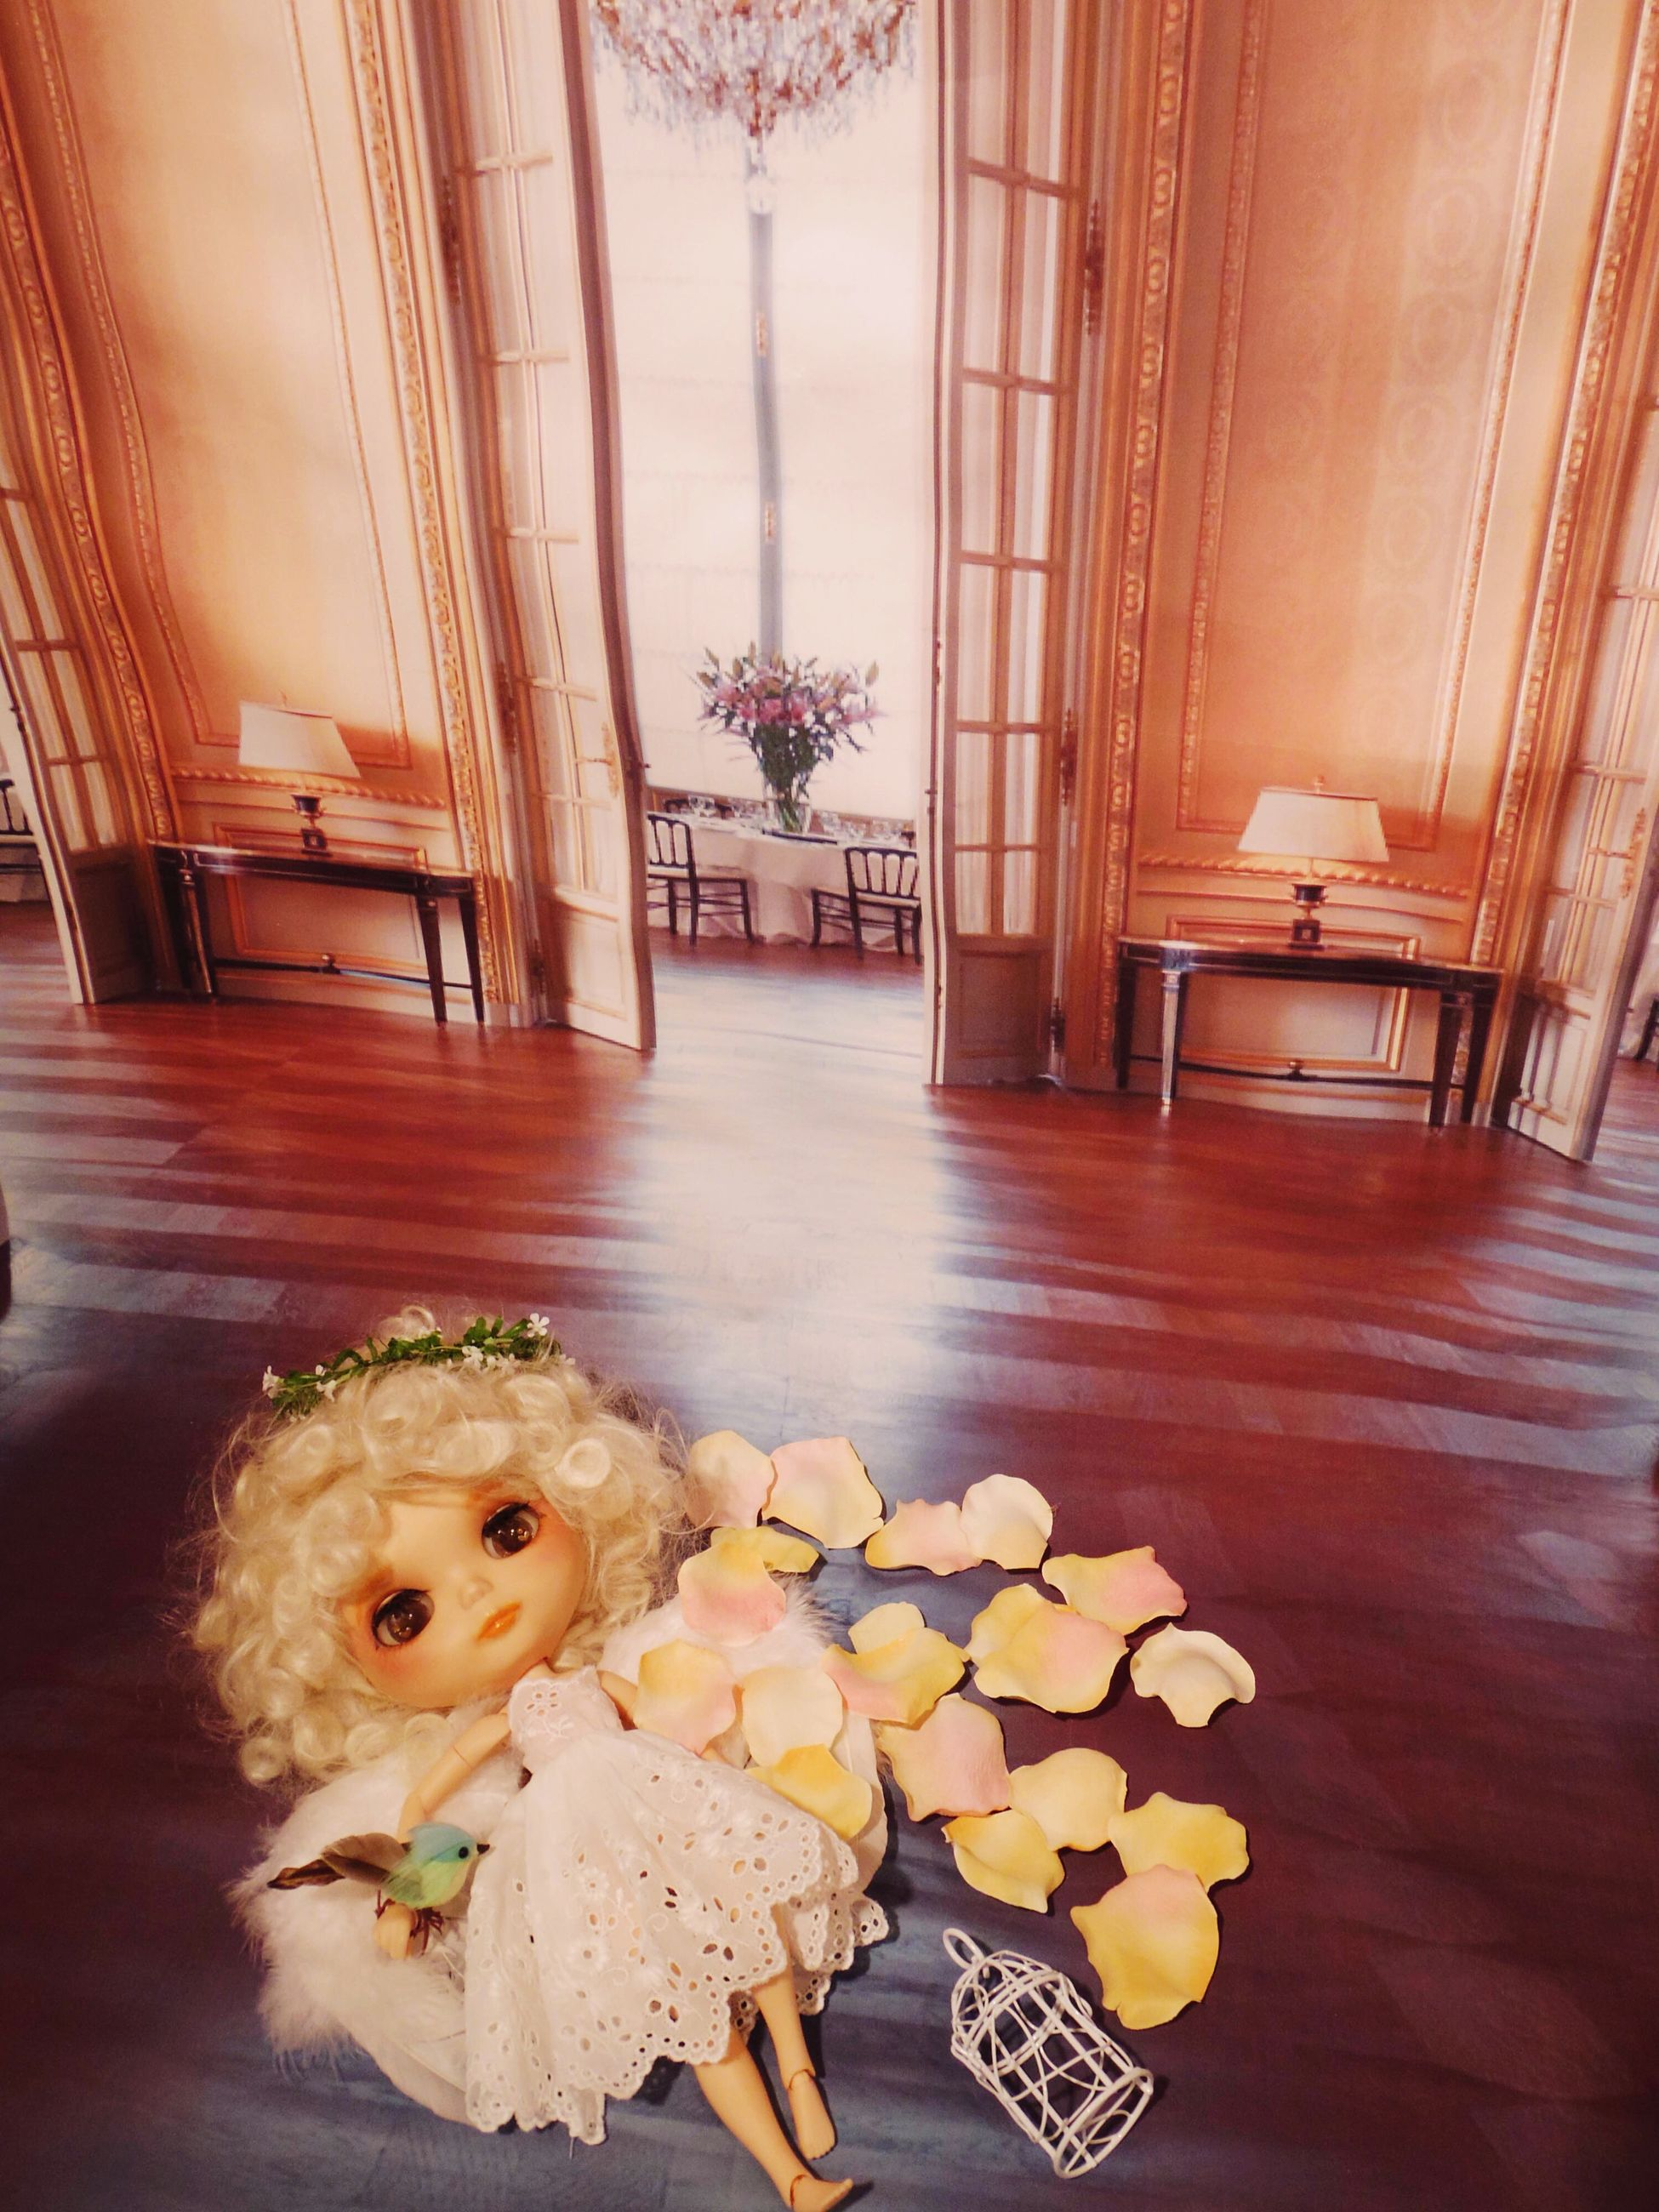 indoors, home interior, table, vase, flower, still life, glass - material, home, chair, window, decoration, hardwood floor, domestic room, curtain, wood - material, transparent, domestic life, flooring, no people, sofa